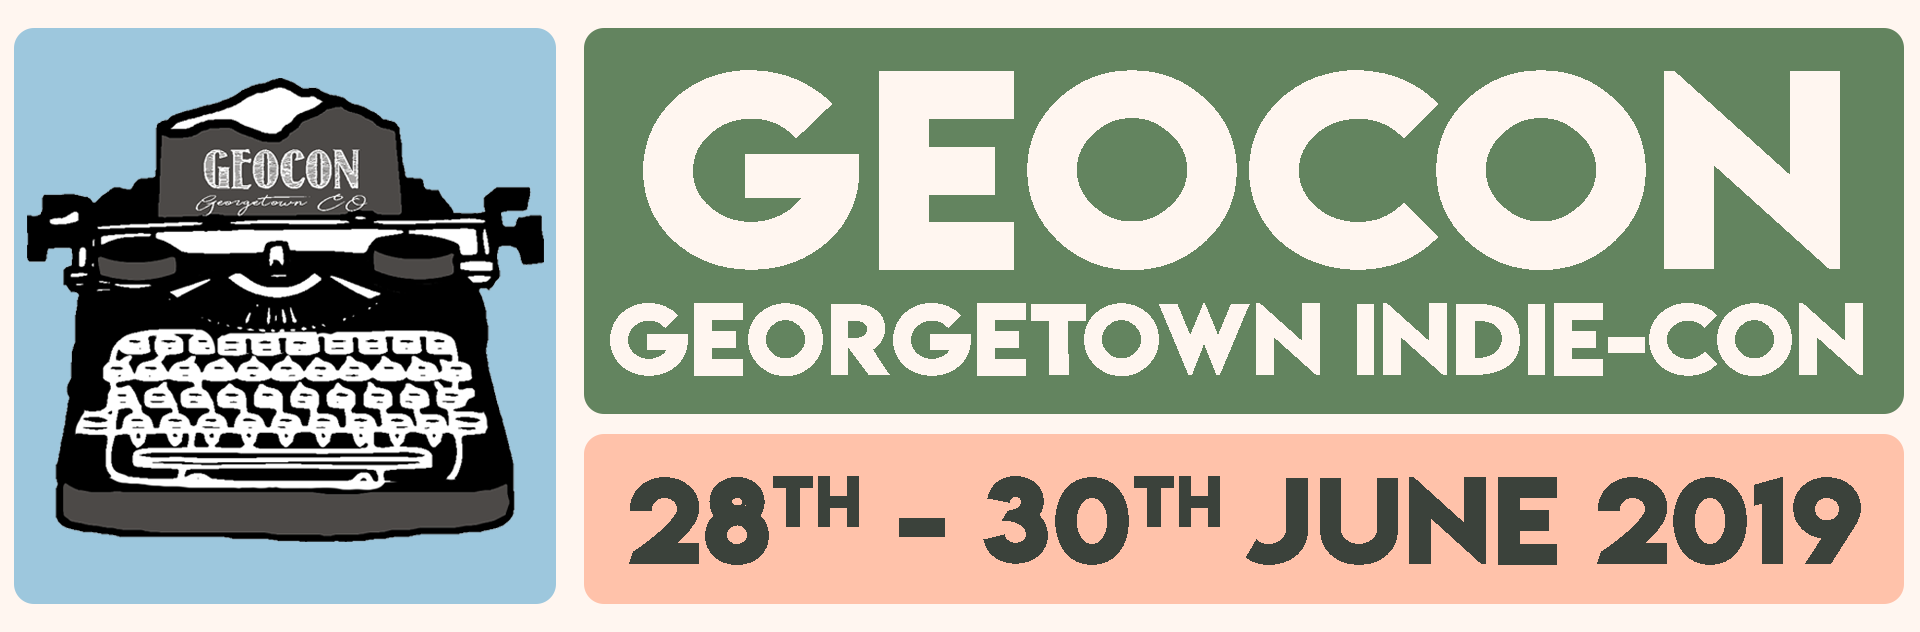 GEOCON2019_Header